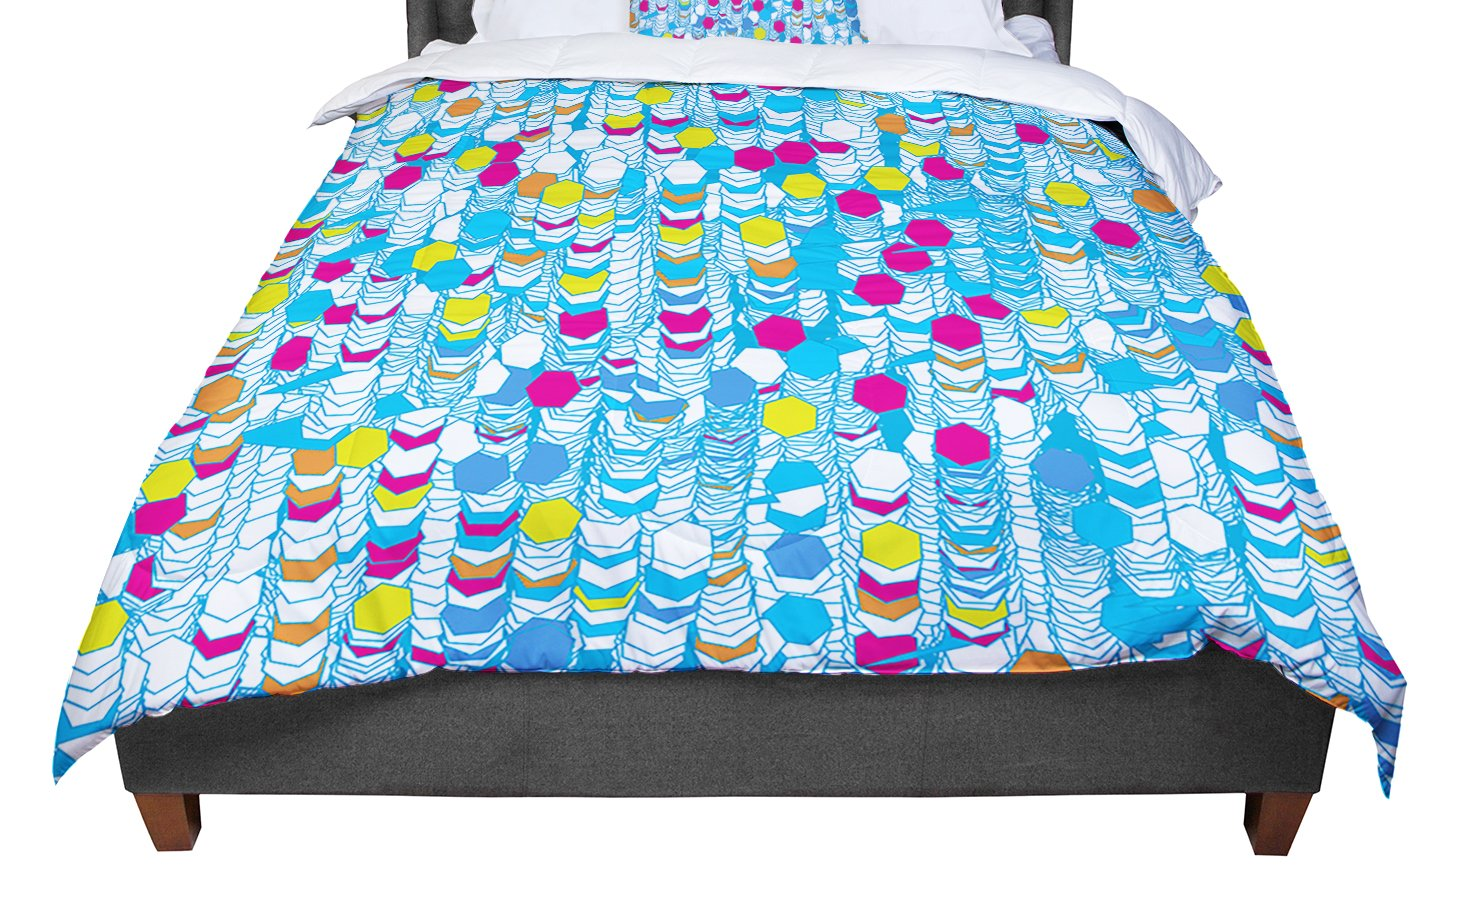 KESS InHouse Frederic Levy-Hadida 'Color Hiving' Blue Abstract Twin Comforter, 68' X 88' 68 X 88 FH1016ACF01